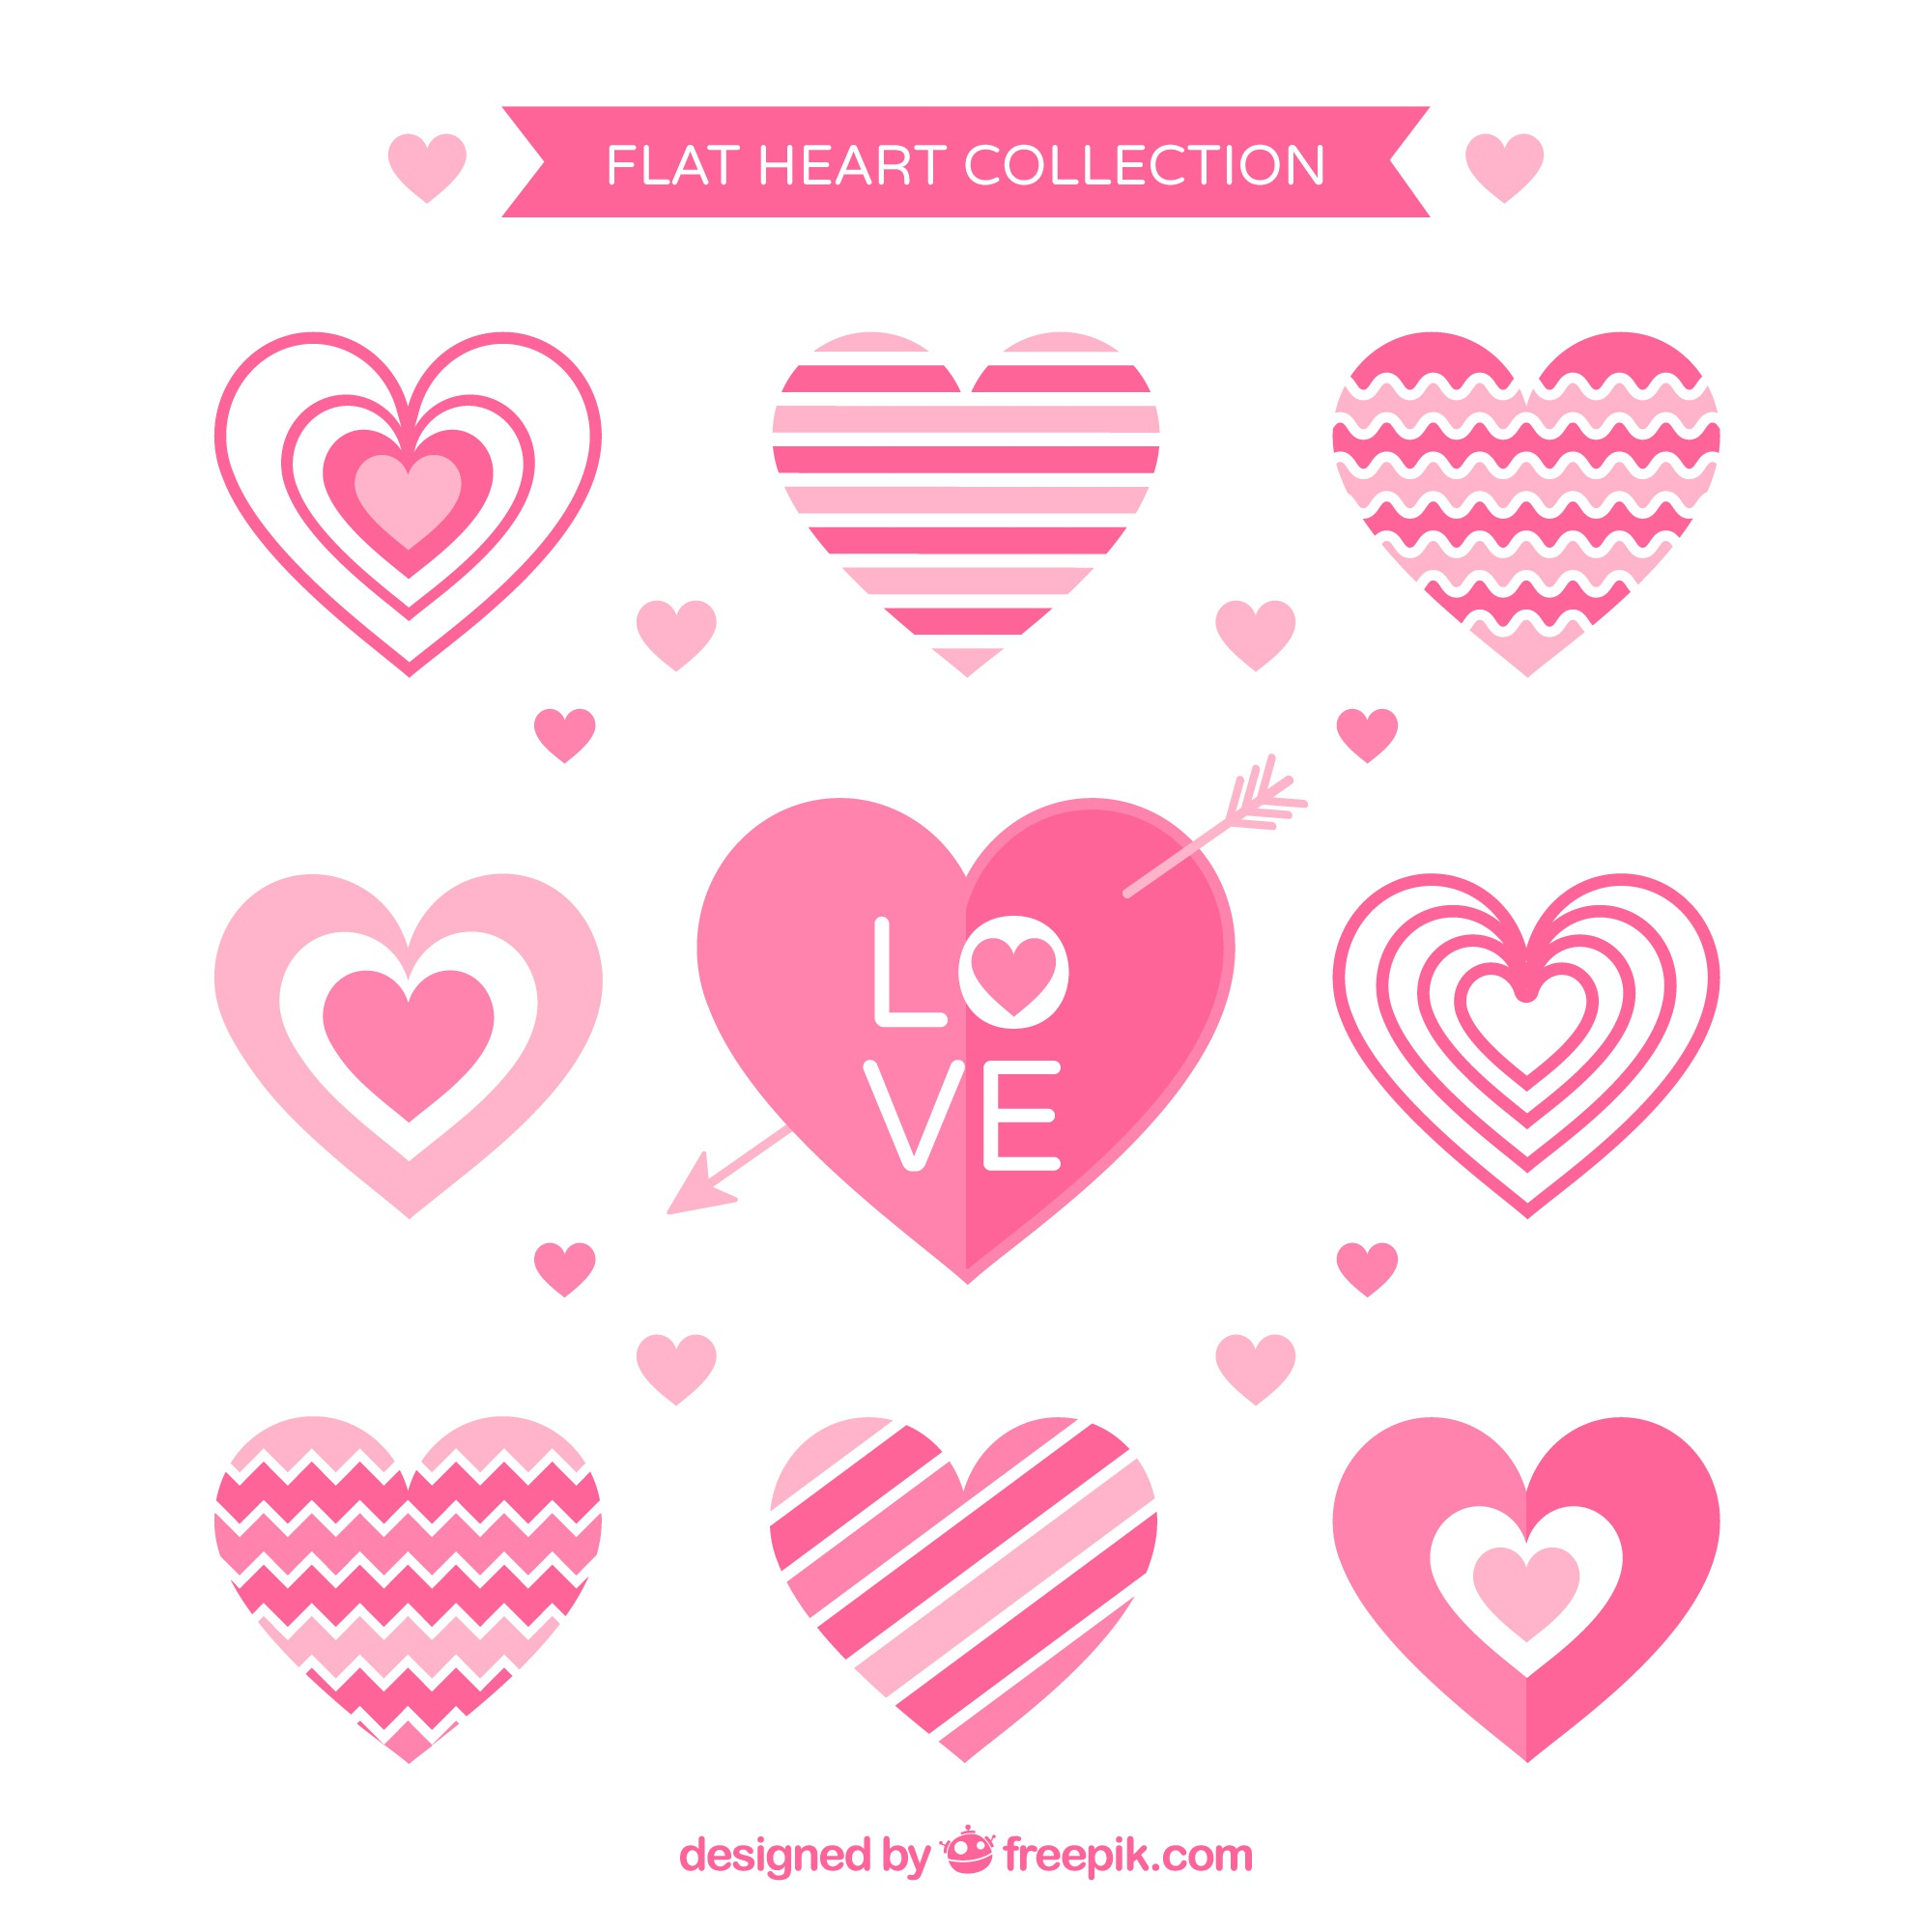 Pack of decorative pink hearts in flat design